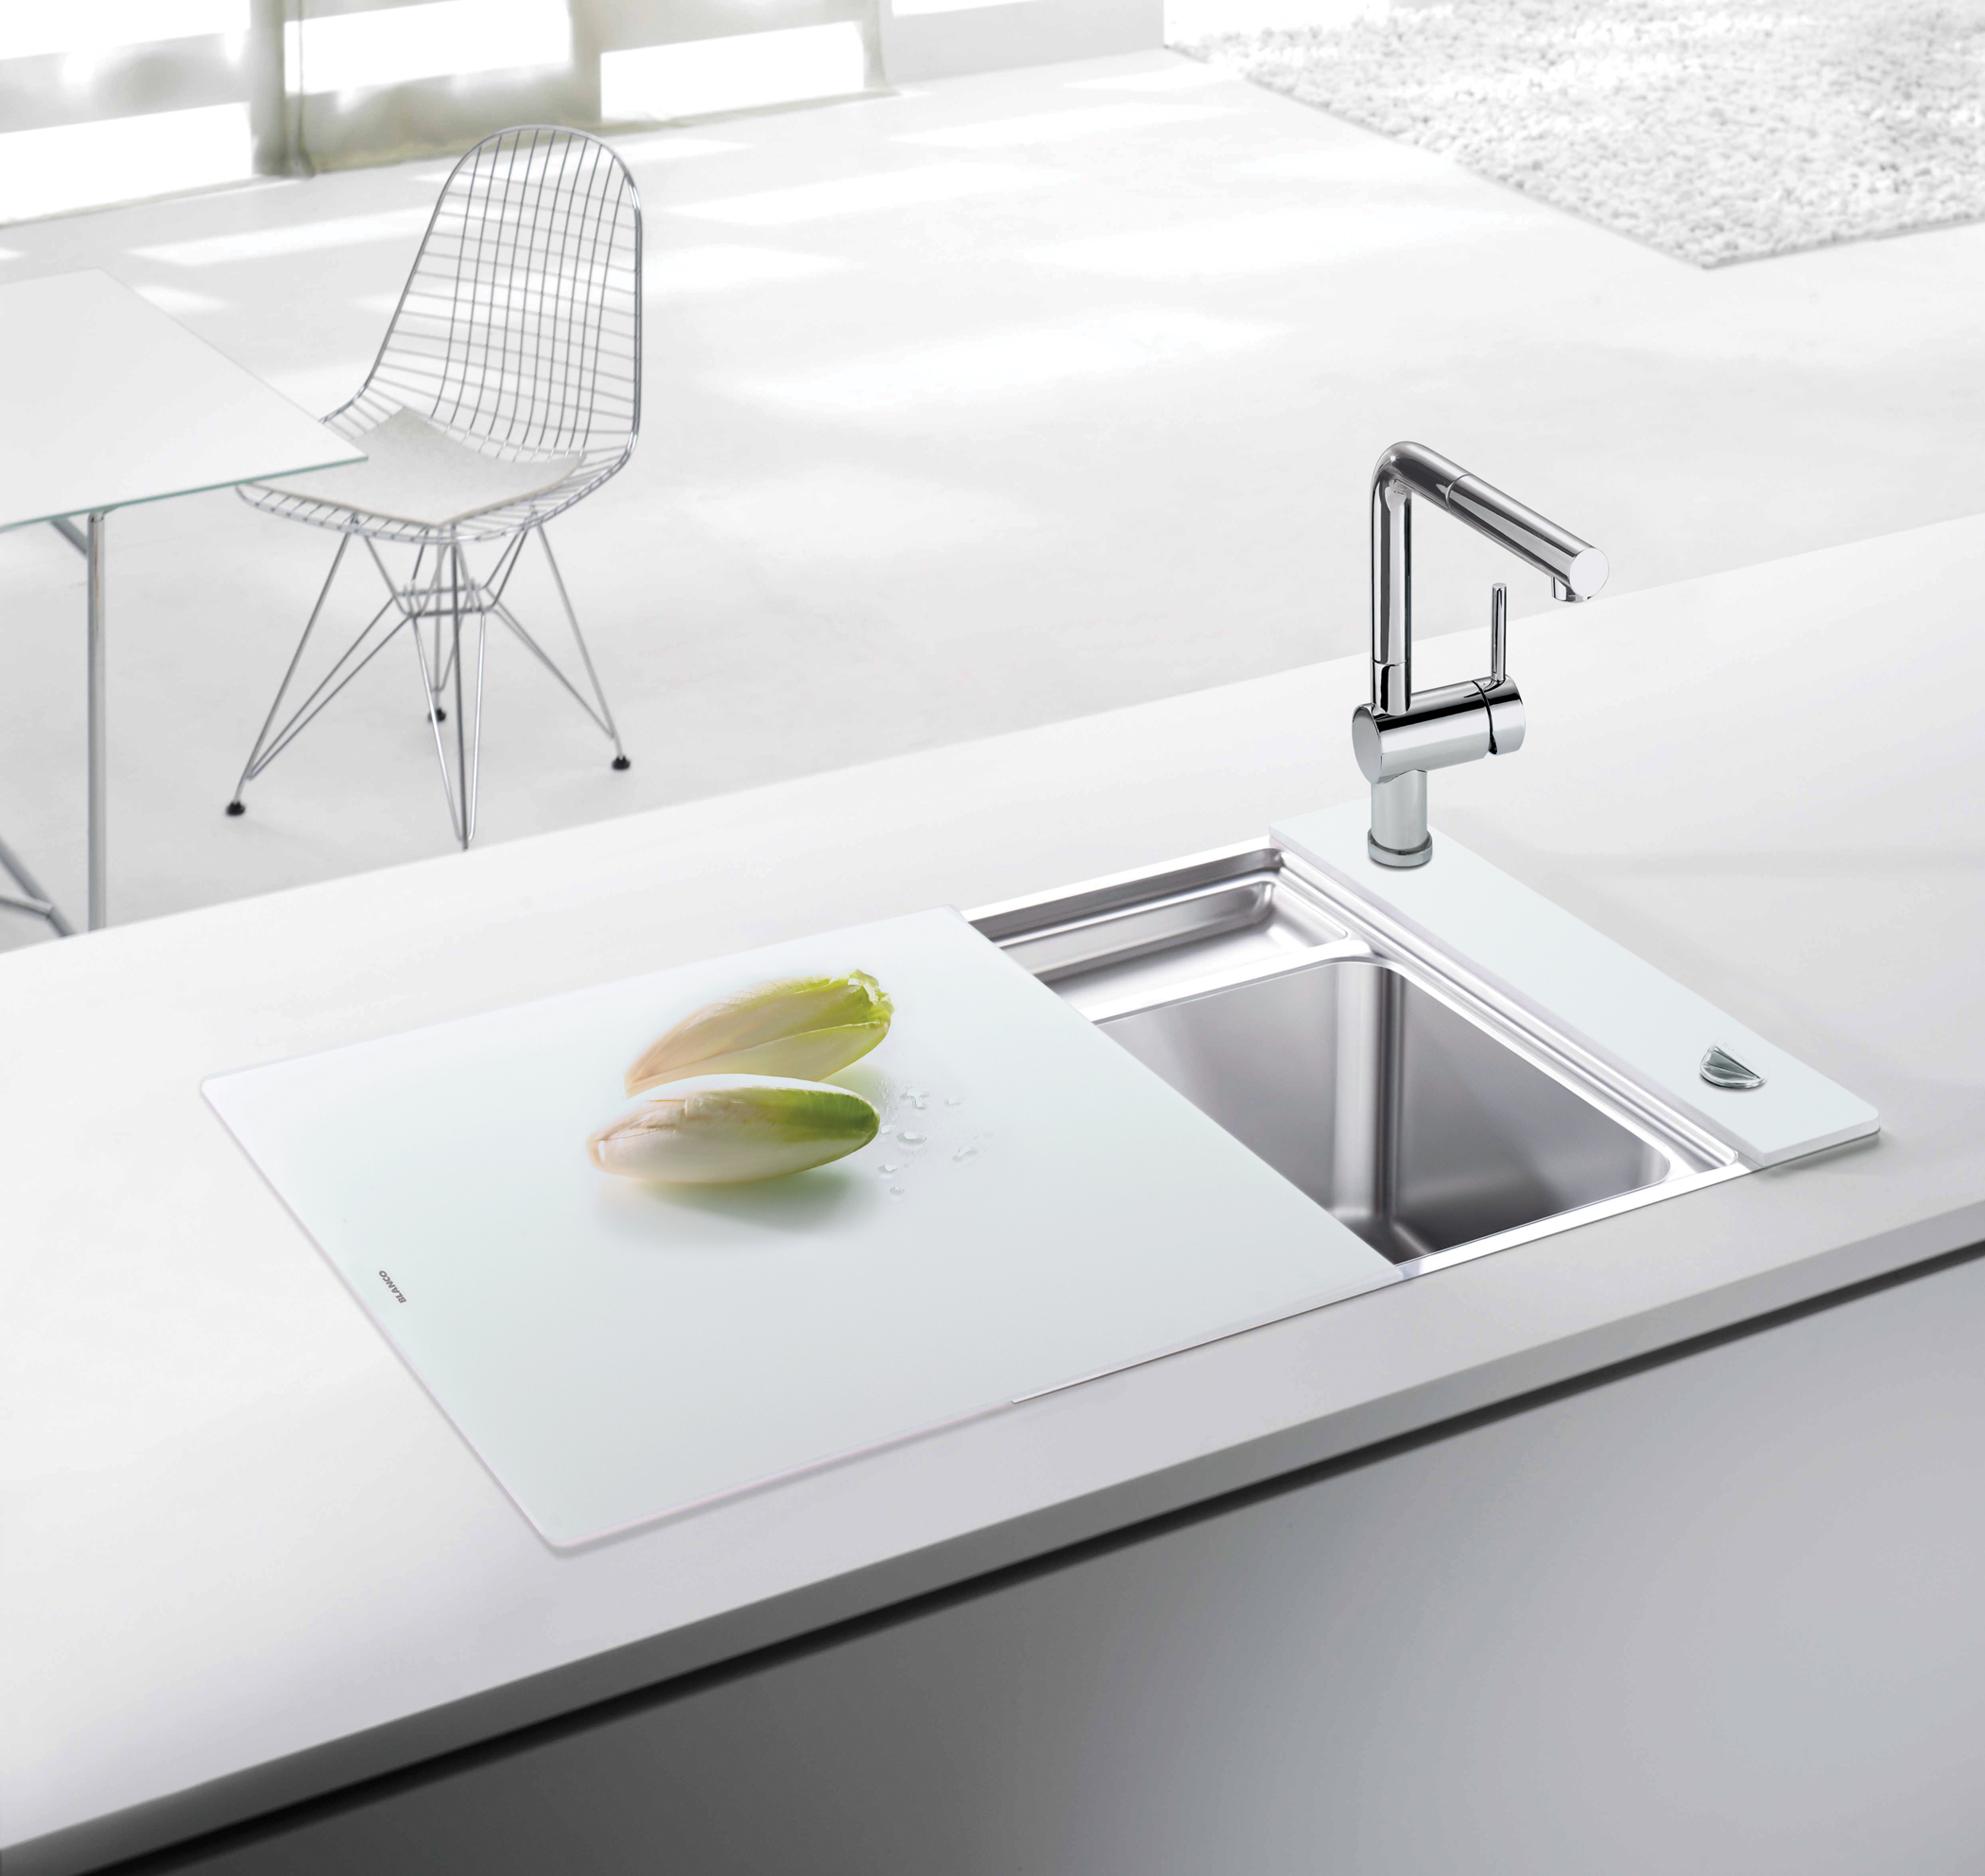 small kitchen sinks design of kitchen sink homesfeed 728